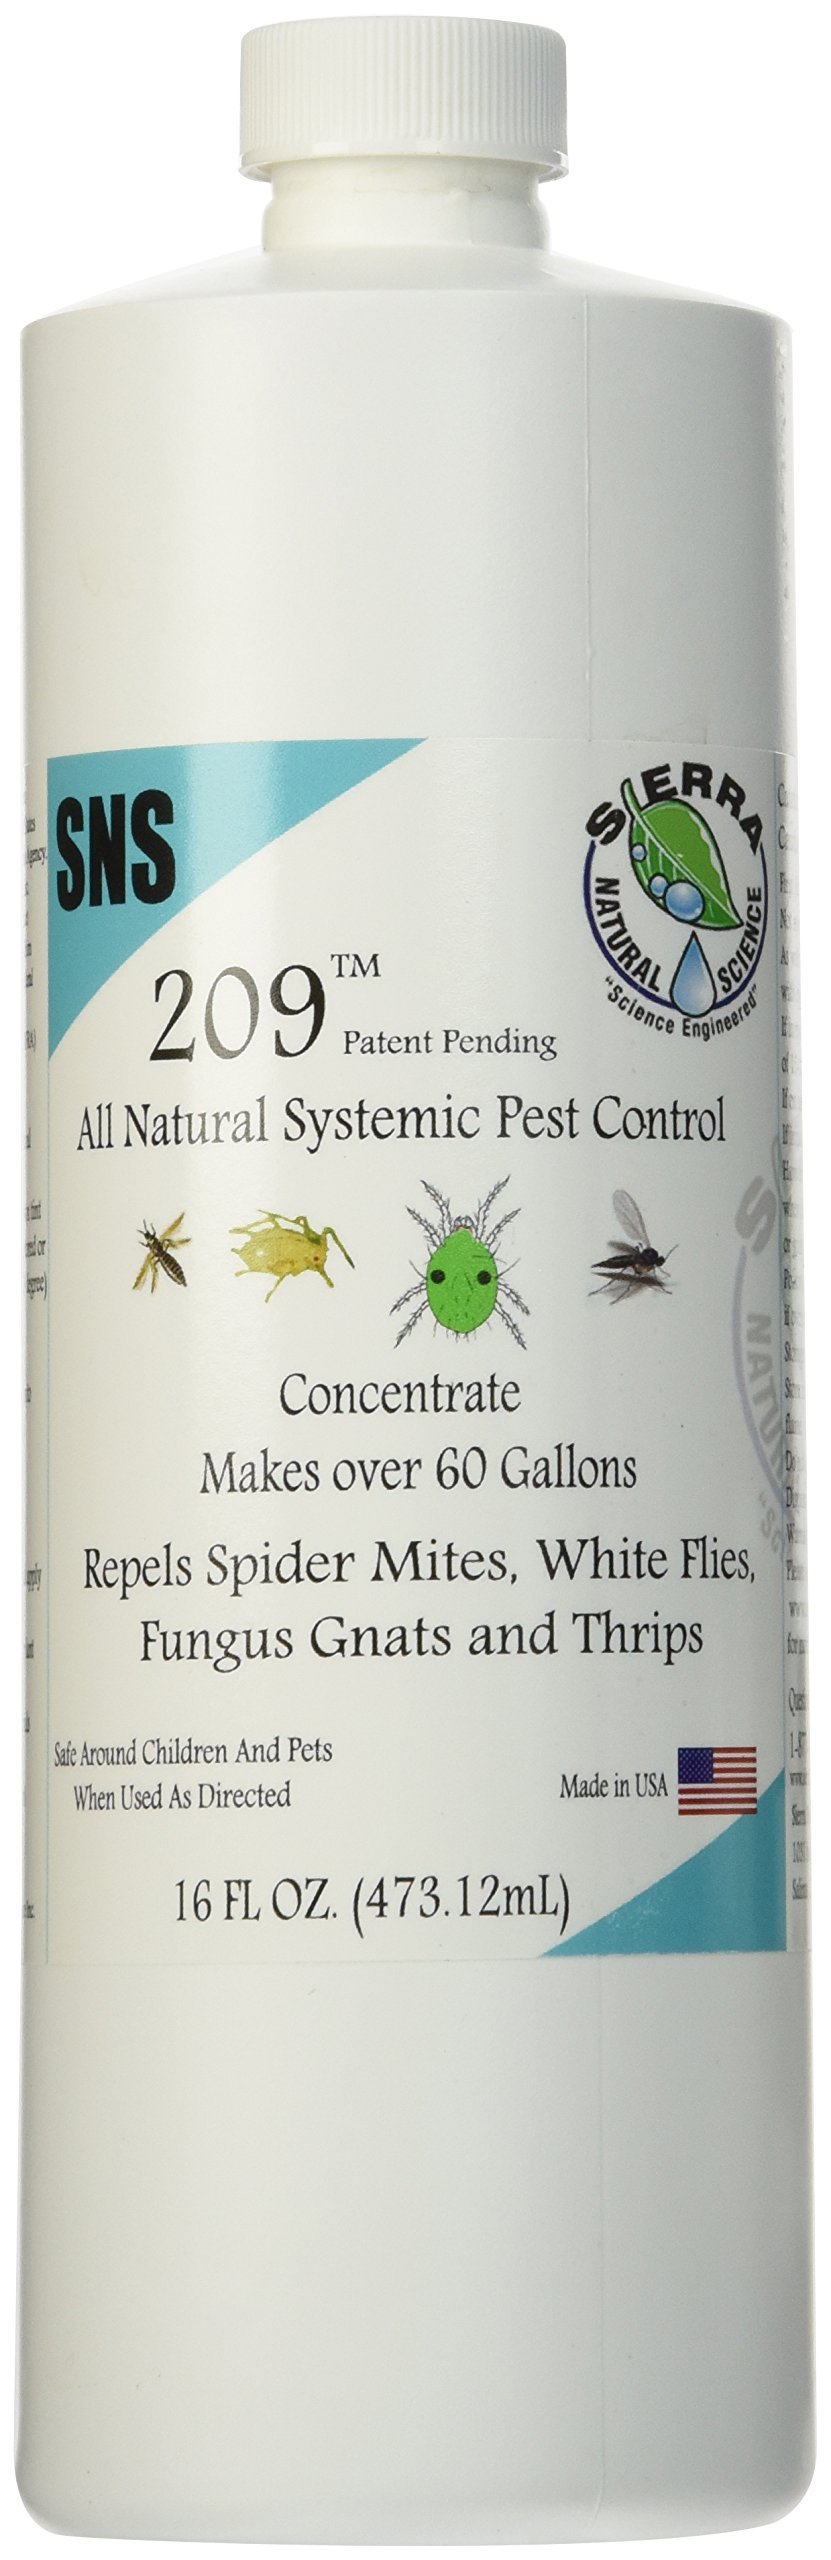 Sierra Natural Science Systemic Pest Control Concentrate -1 Pint by Sierra Natural Science